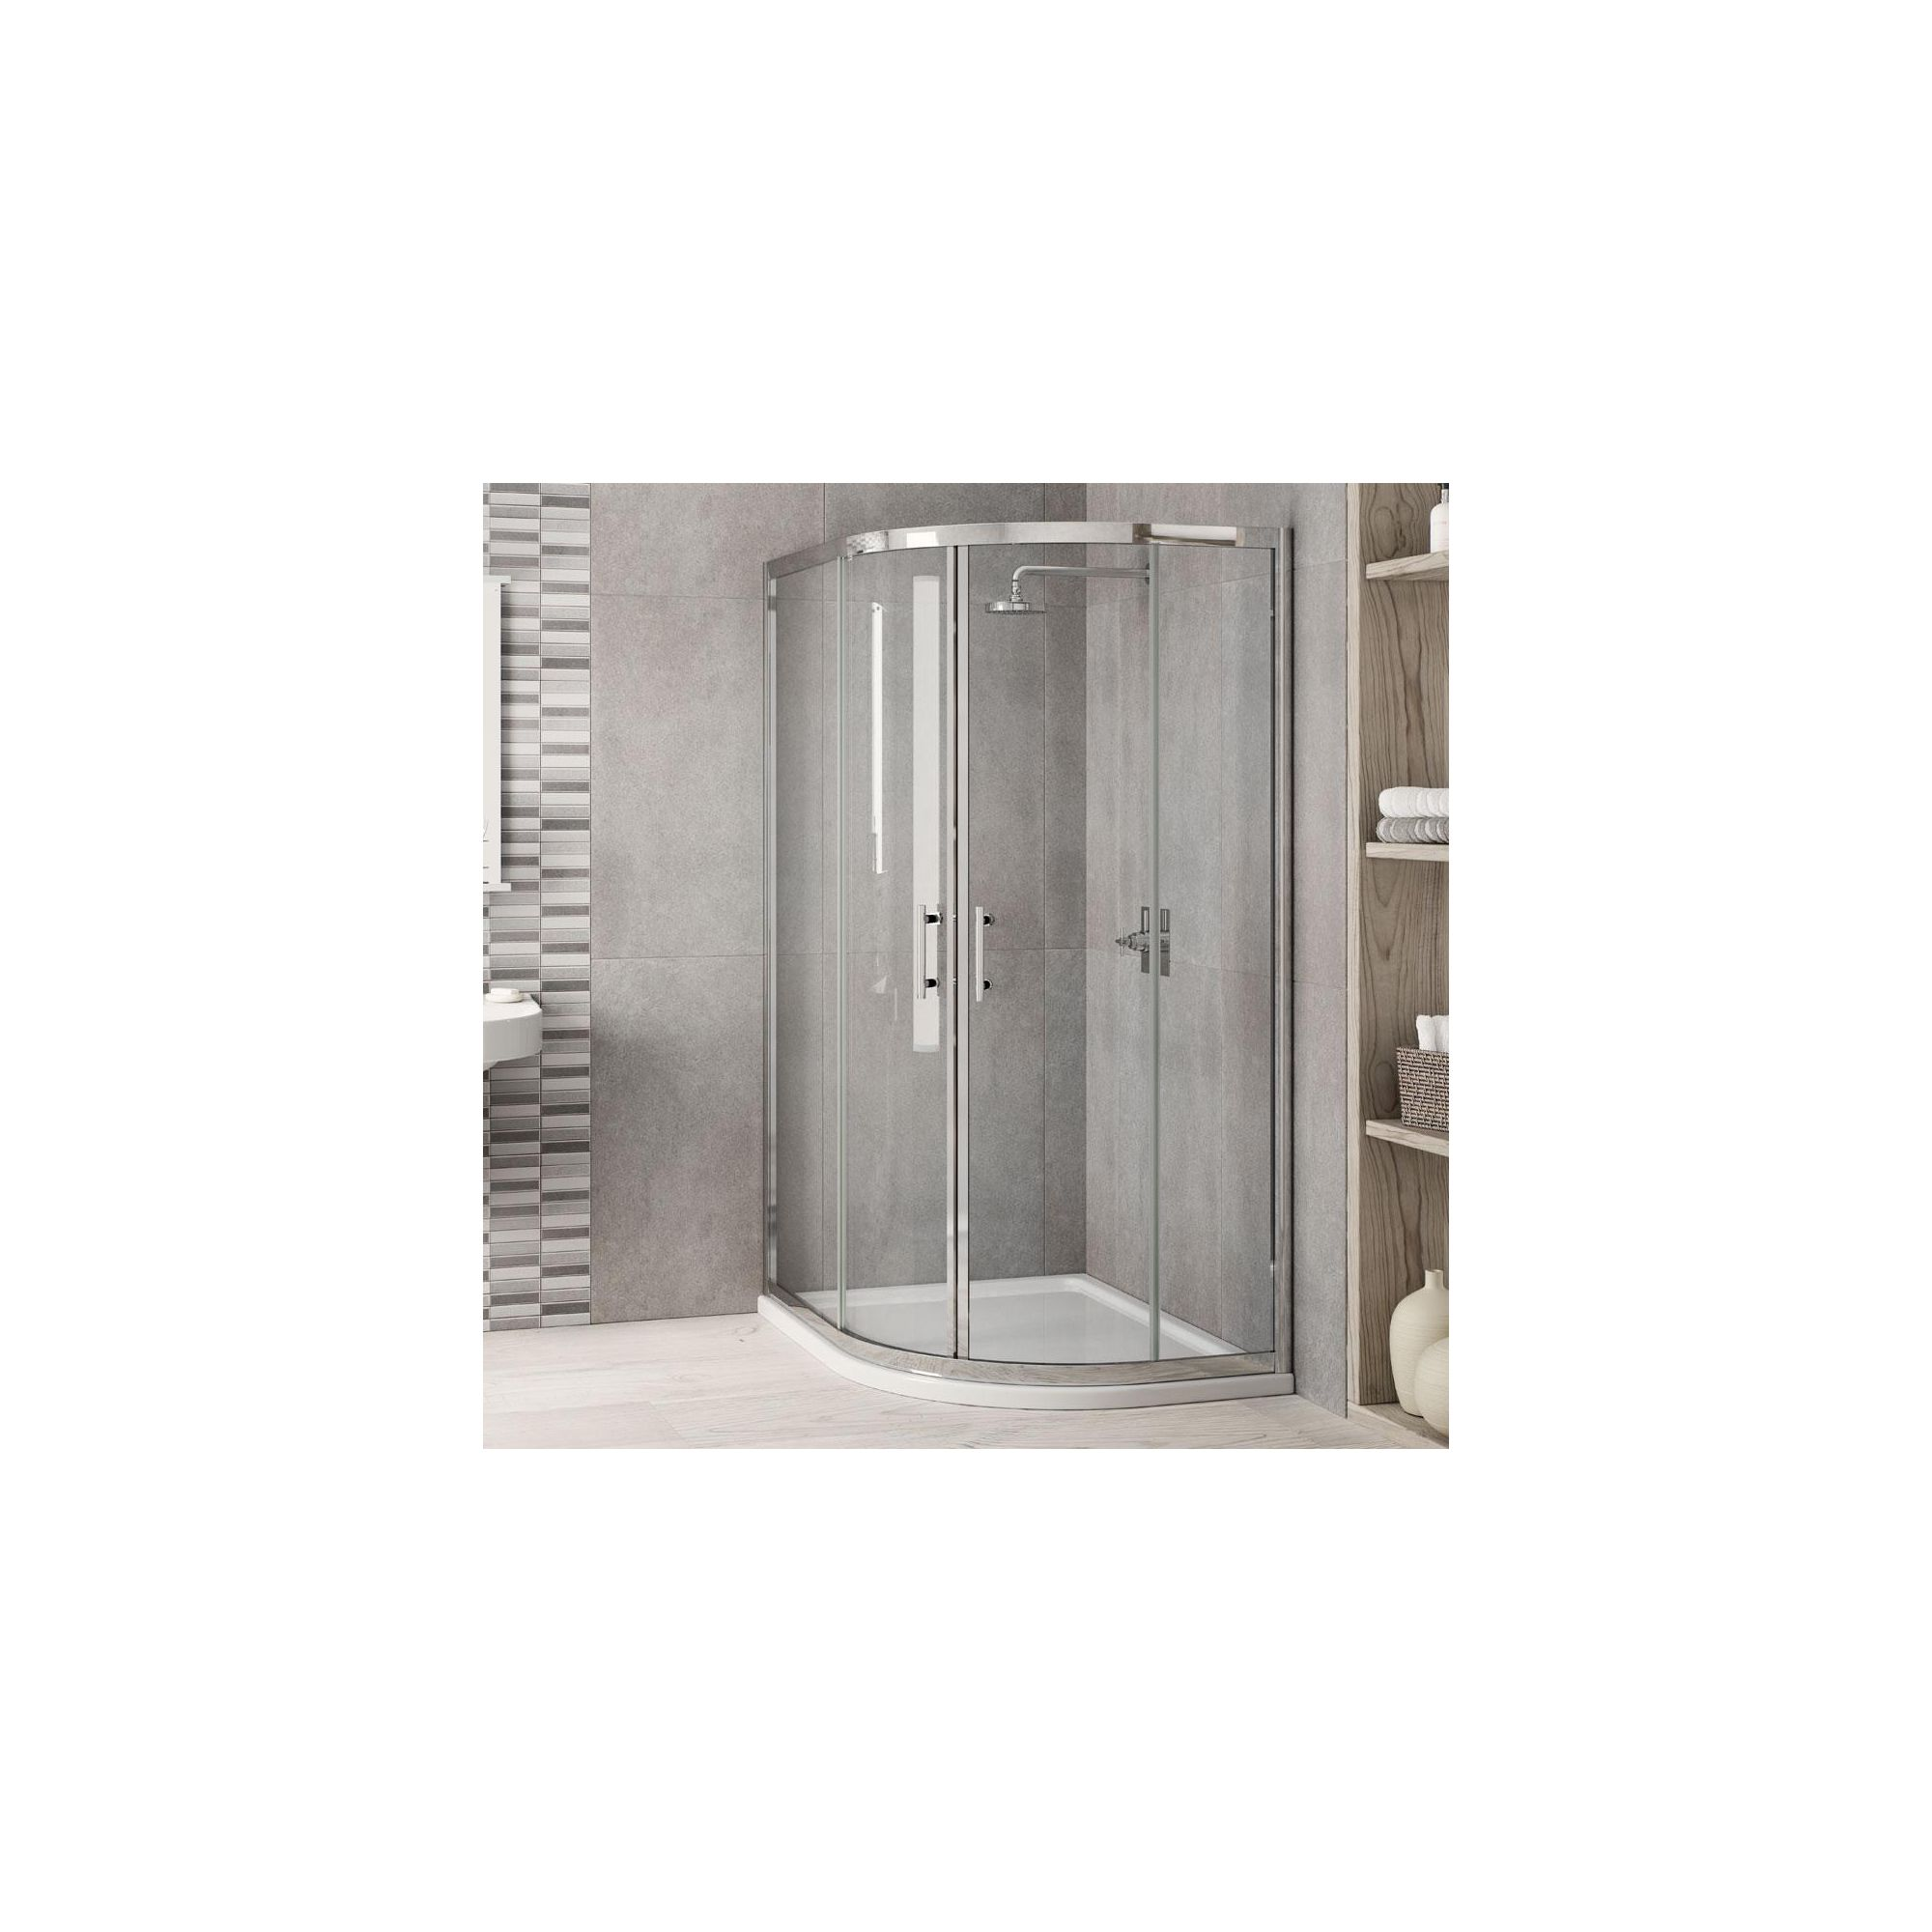 Elemis Inspire Offset Quadrant Shower Enclosure, 1200mm x 900mm, 6mm Glass, Low Profile Tray, Left Handed at Tesco Direct